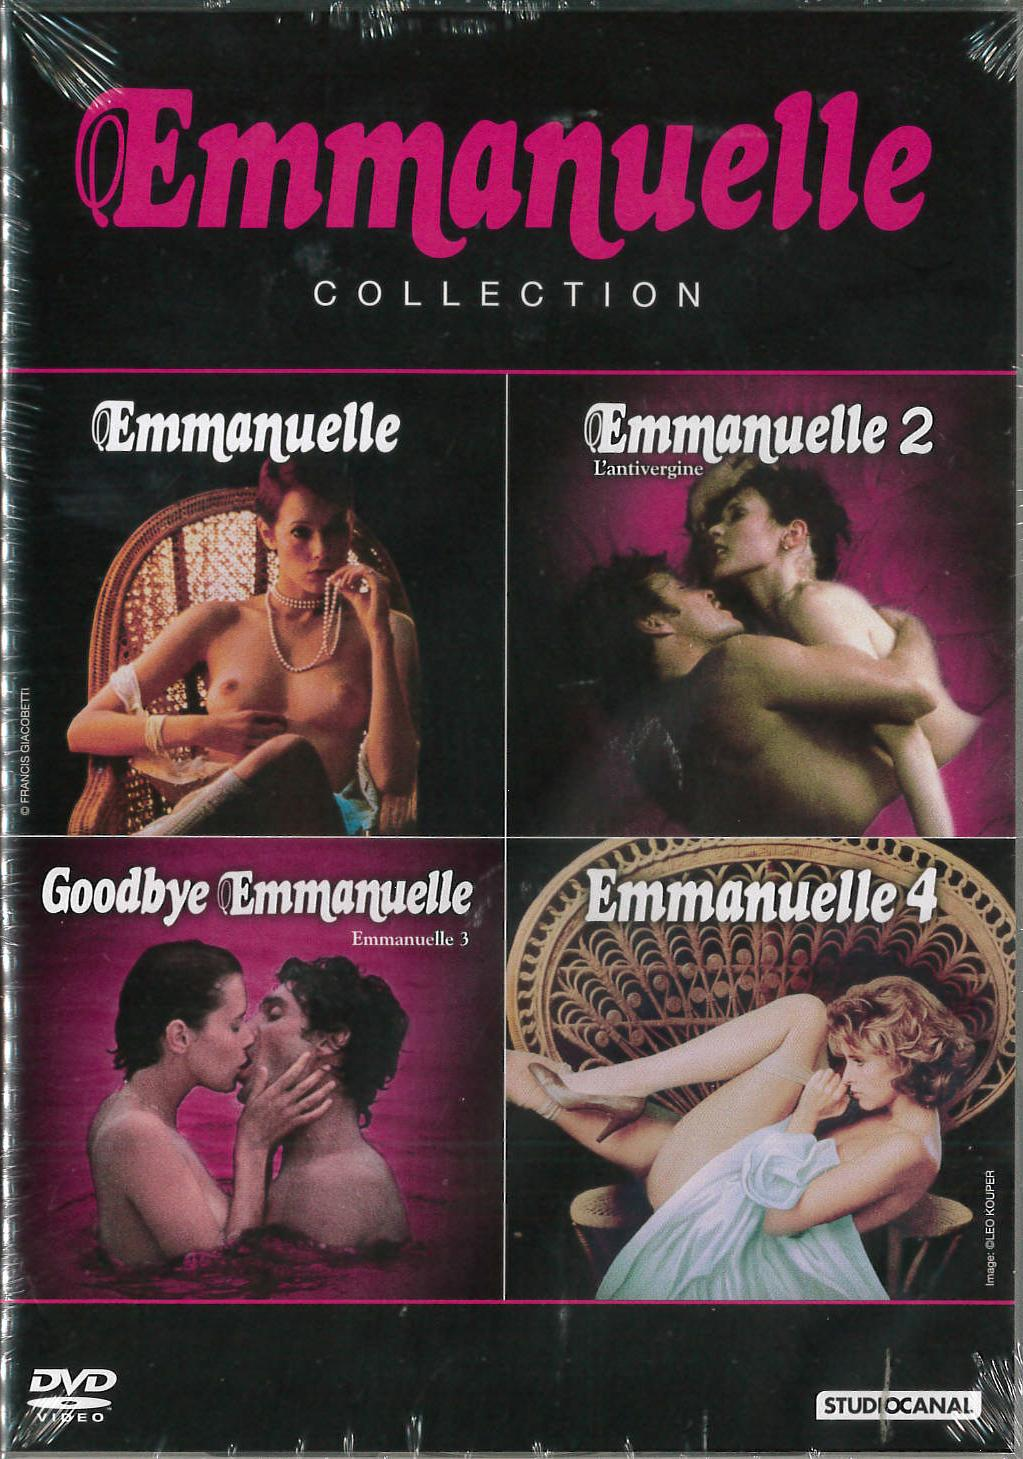 COF.EMMANUELLE COLLECTION (4 DVD) (DVD)